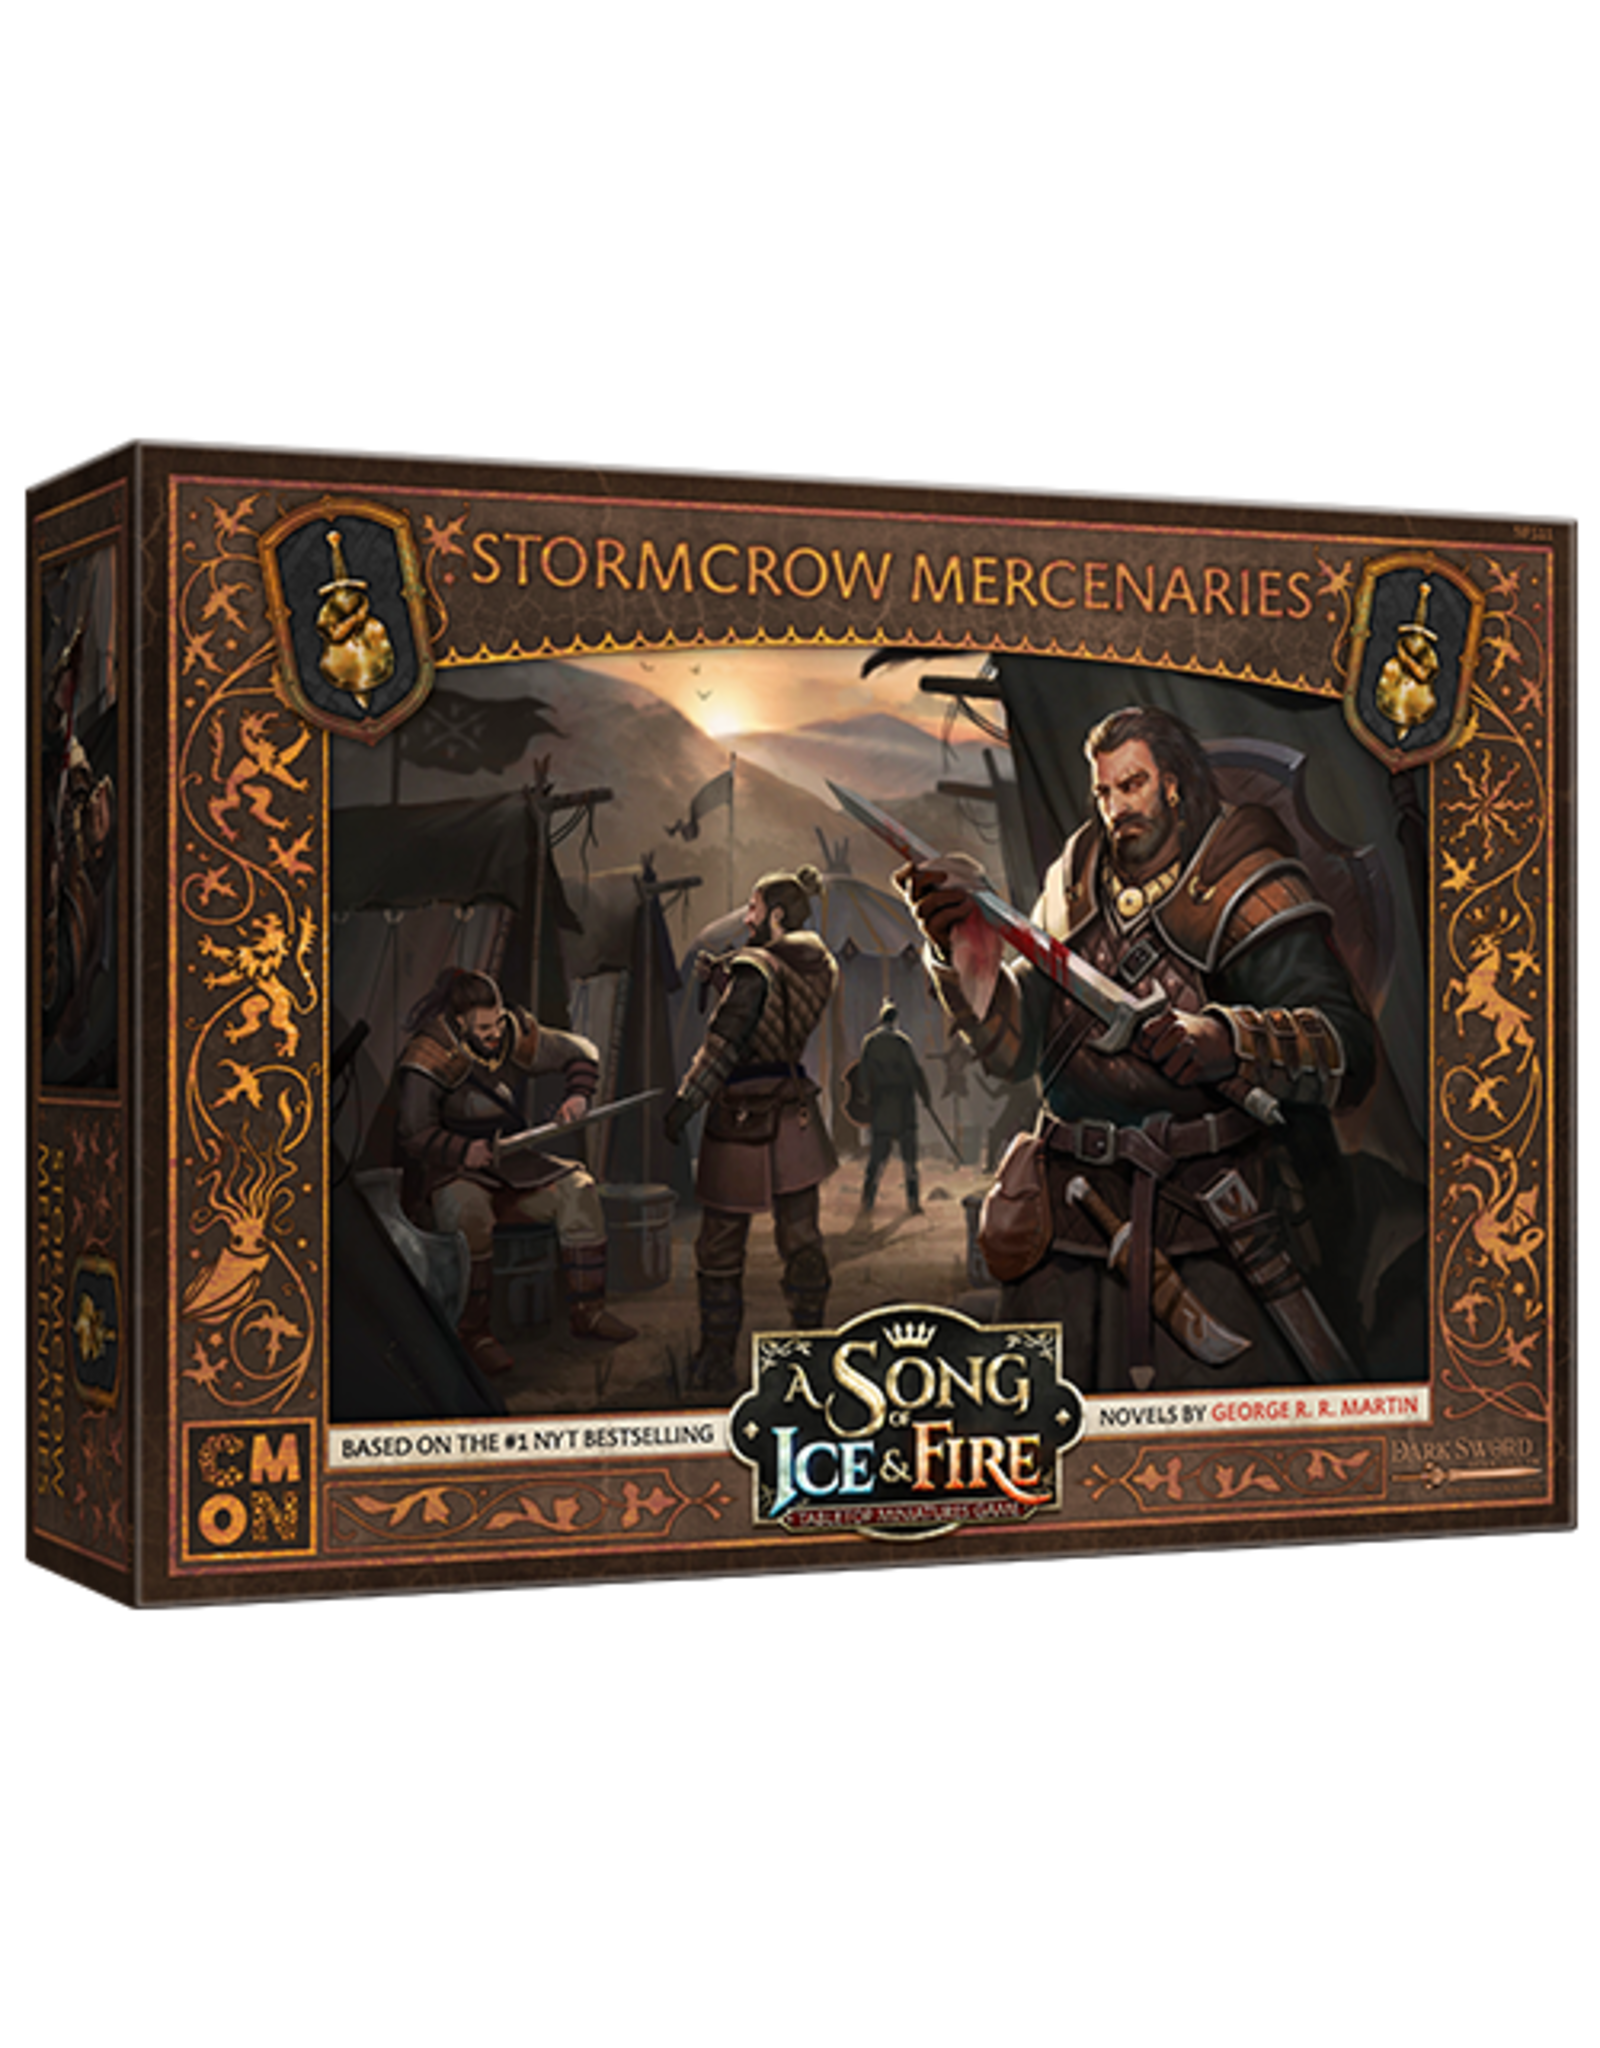 CMON A SONG OF ICE & FIRE: NEUTRAL STORMCROW MERCENARIES